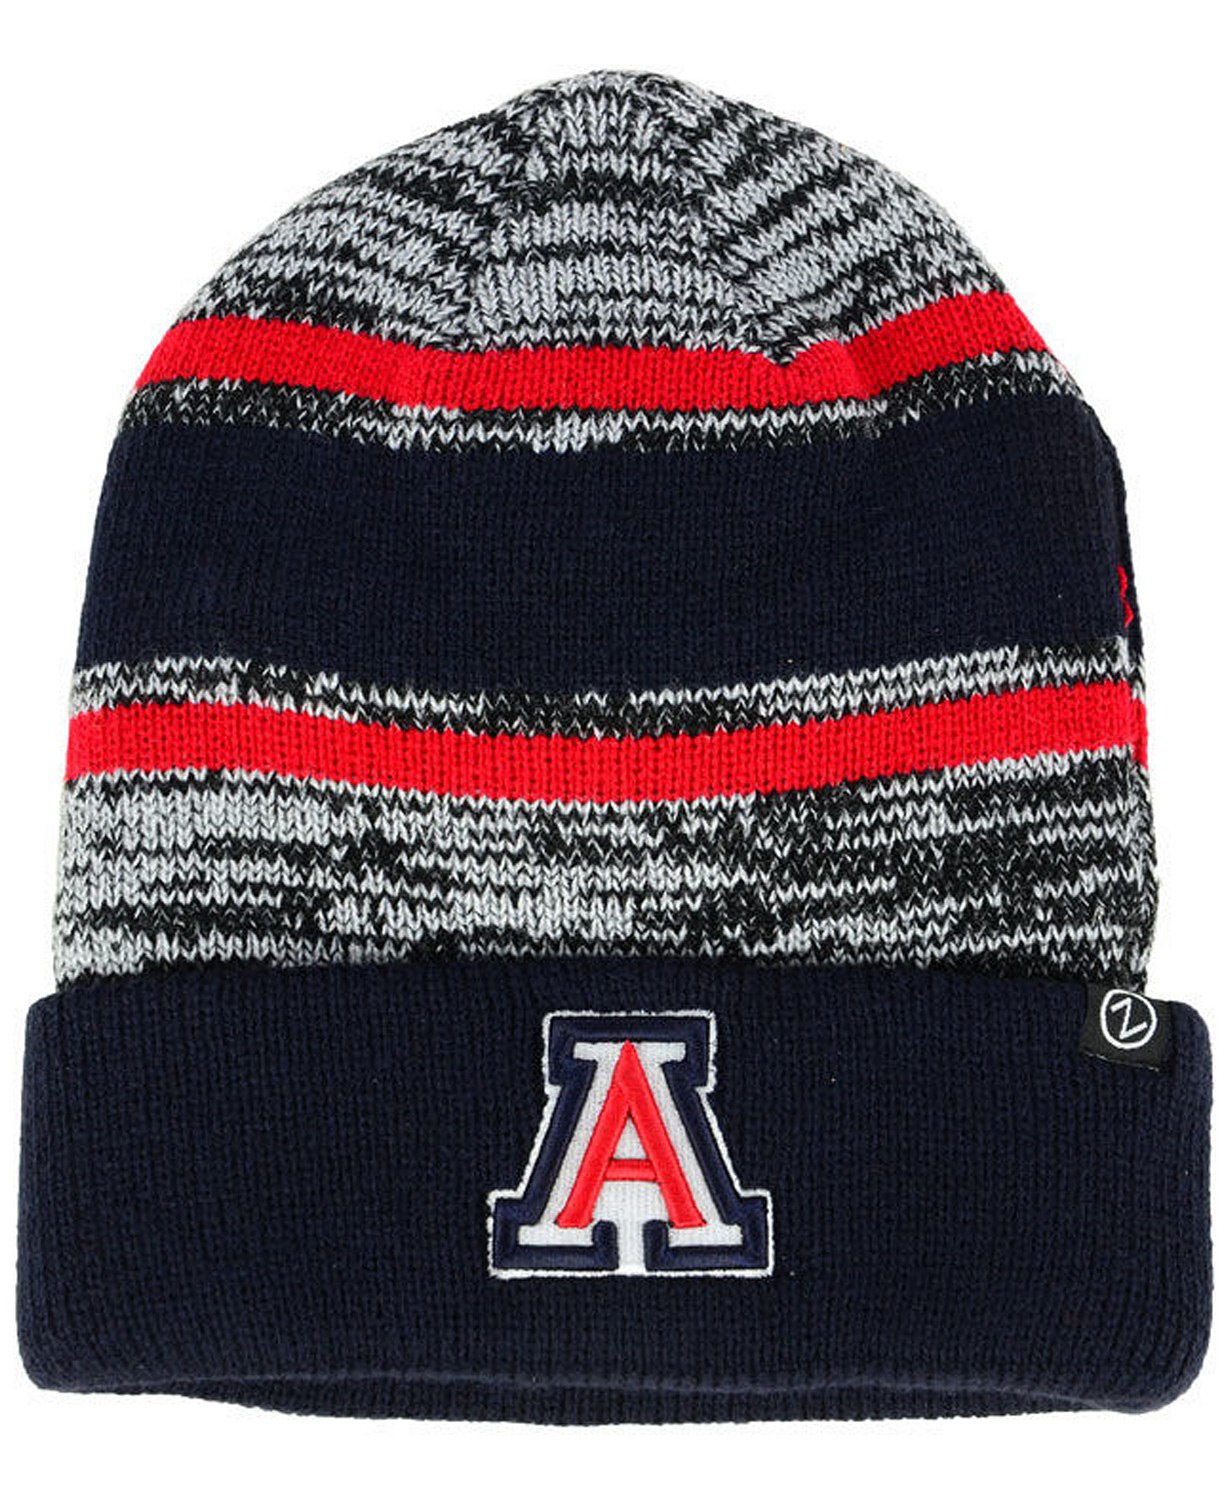 8671b2987 Arizona Winter Gear | University of Arizona BookStores